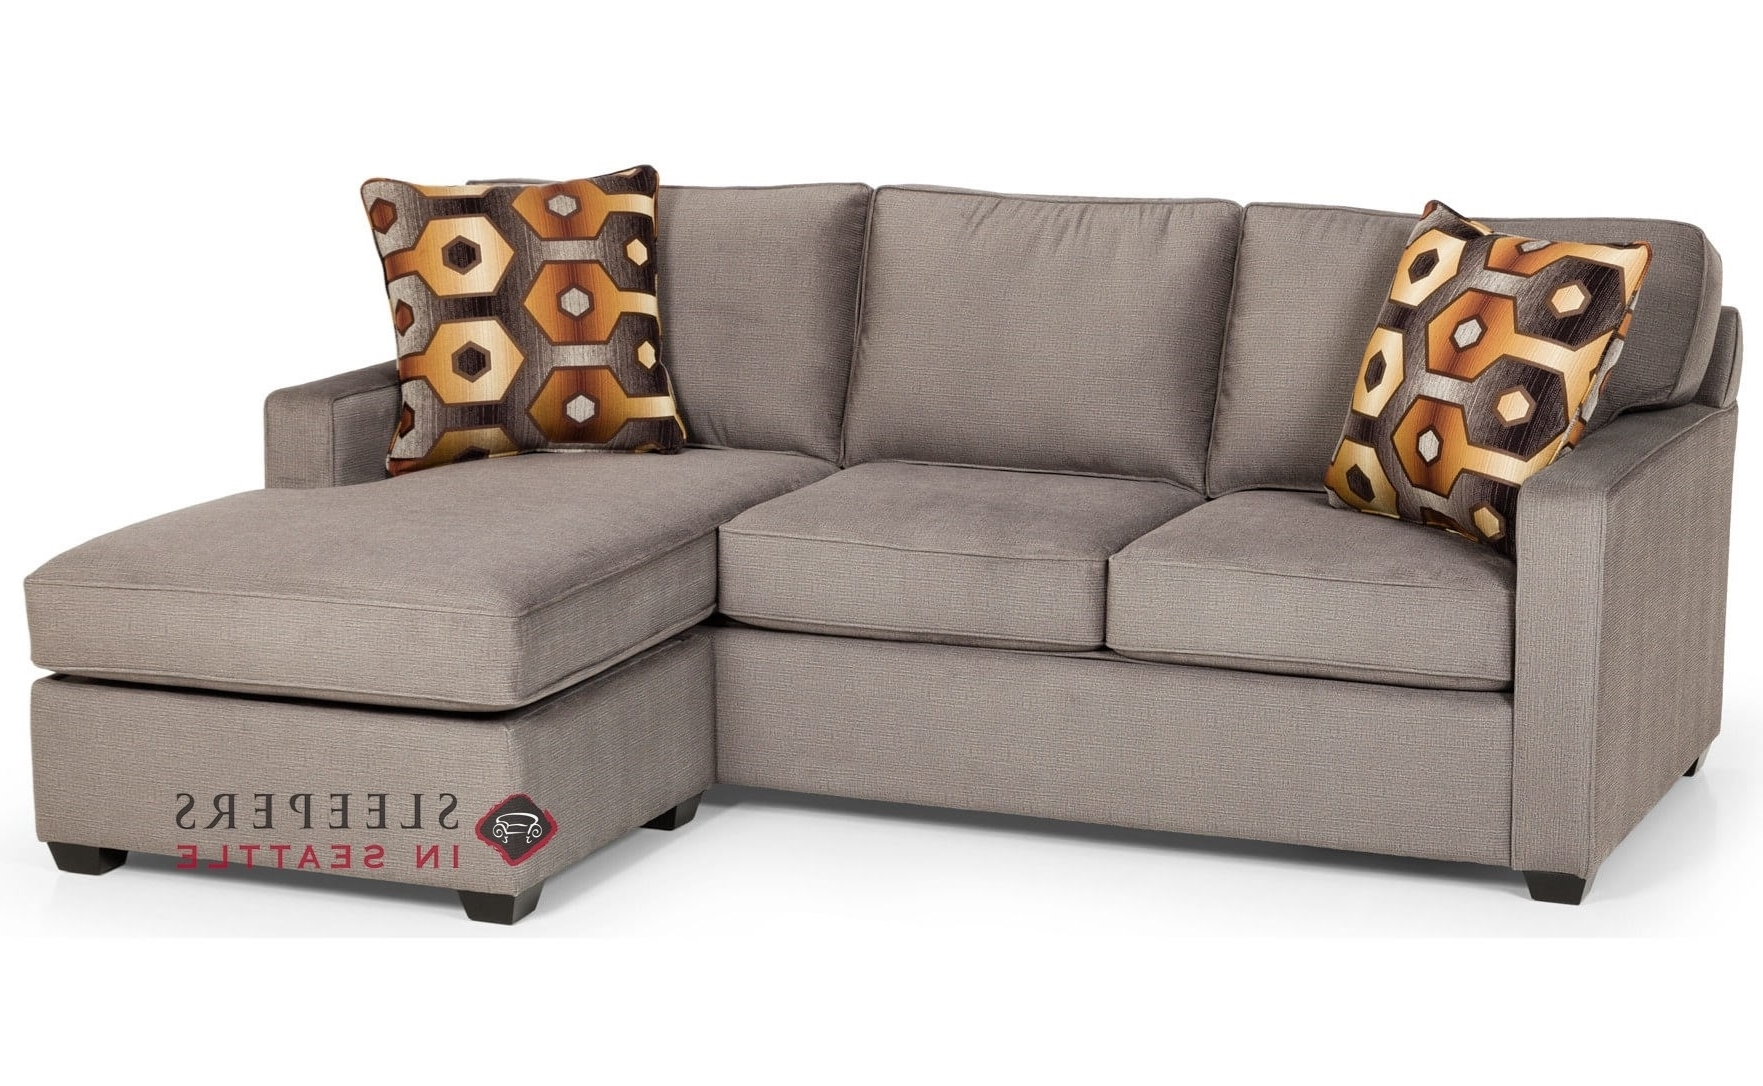 Customize And Personalize 403 Chaise Sectional Fabric Sofa Intended For Well Known Chaise Sleeper Sofas (View 13 of 15)